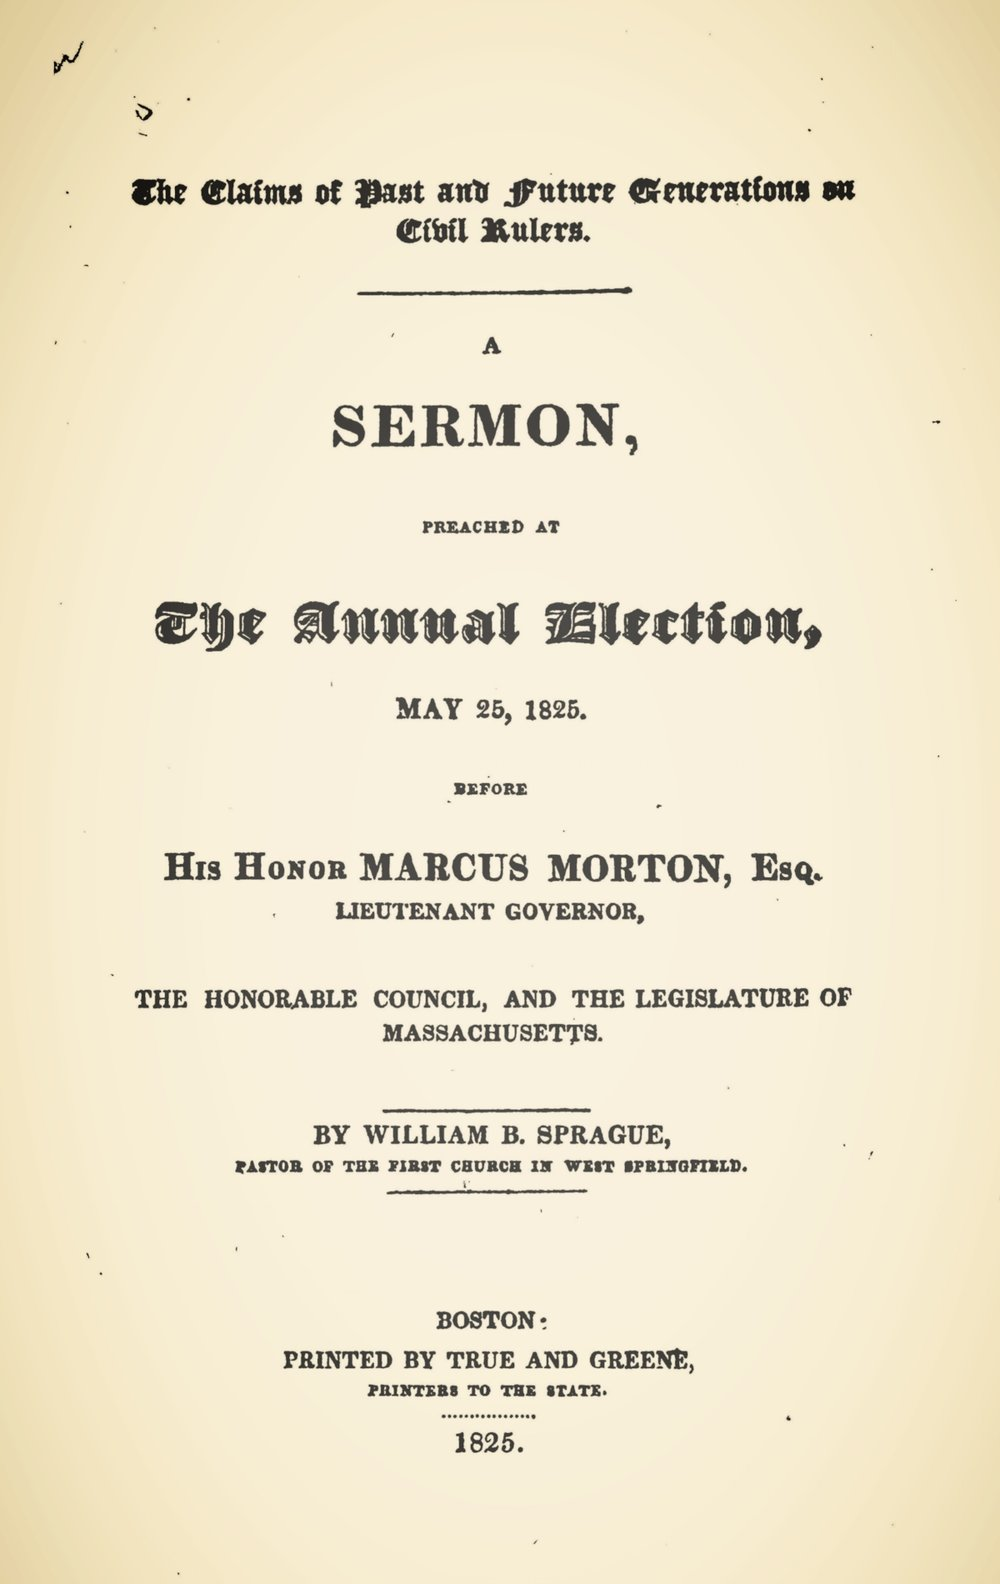 Sprague, William Buell, The Claims of Past and Future Generations on Civil Rulers Title Page.jpg